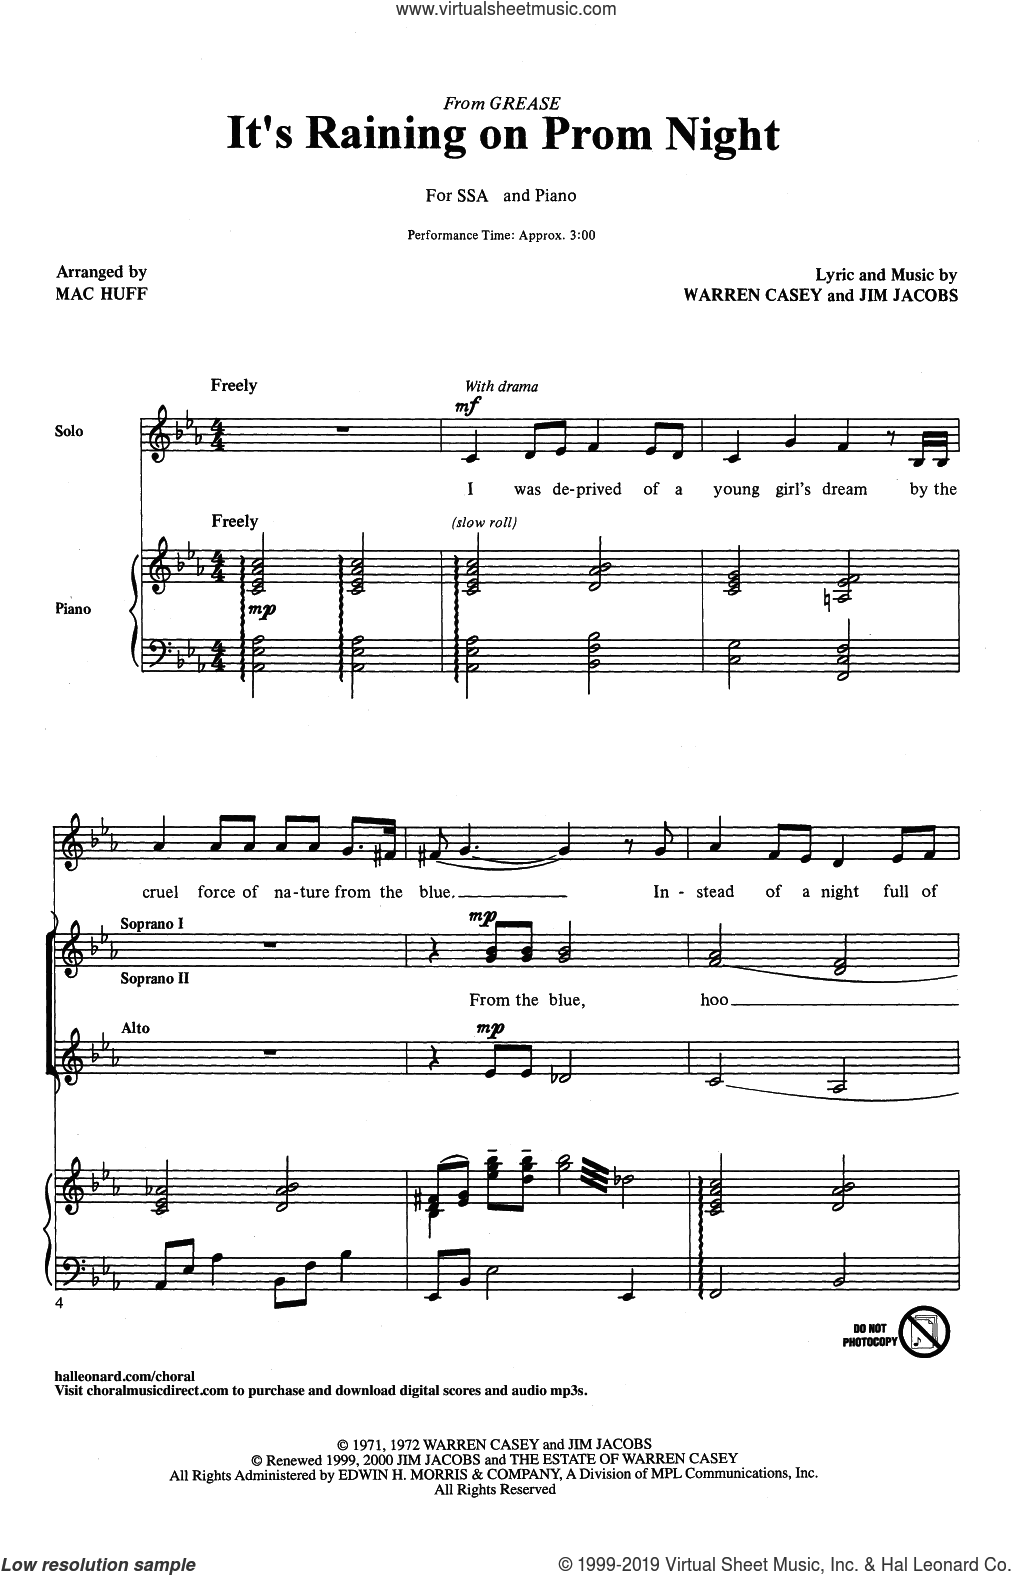 It's Raining On Prom Night (arr. Mac Huff) sheet music for choir (SSA: soprano, alto) by Jim Jacobs, Mac Huff, Jim Jacobs & Warren Casey and Warren Casey, intermediate skill level